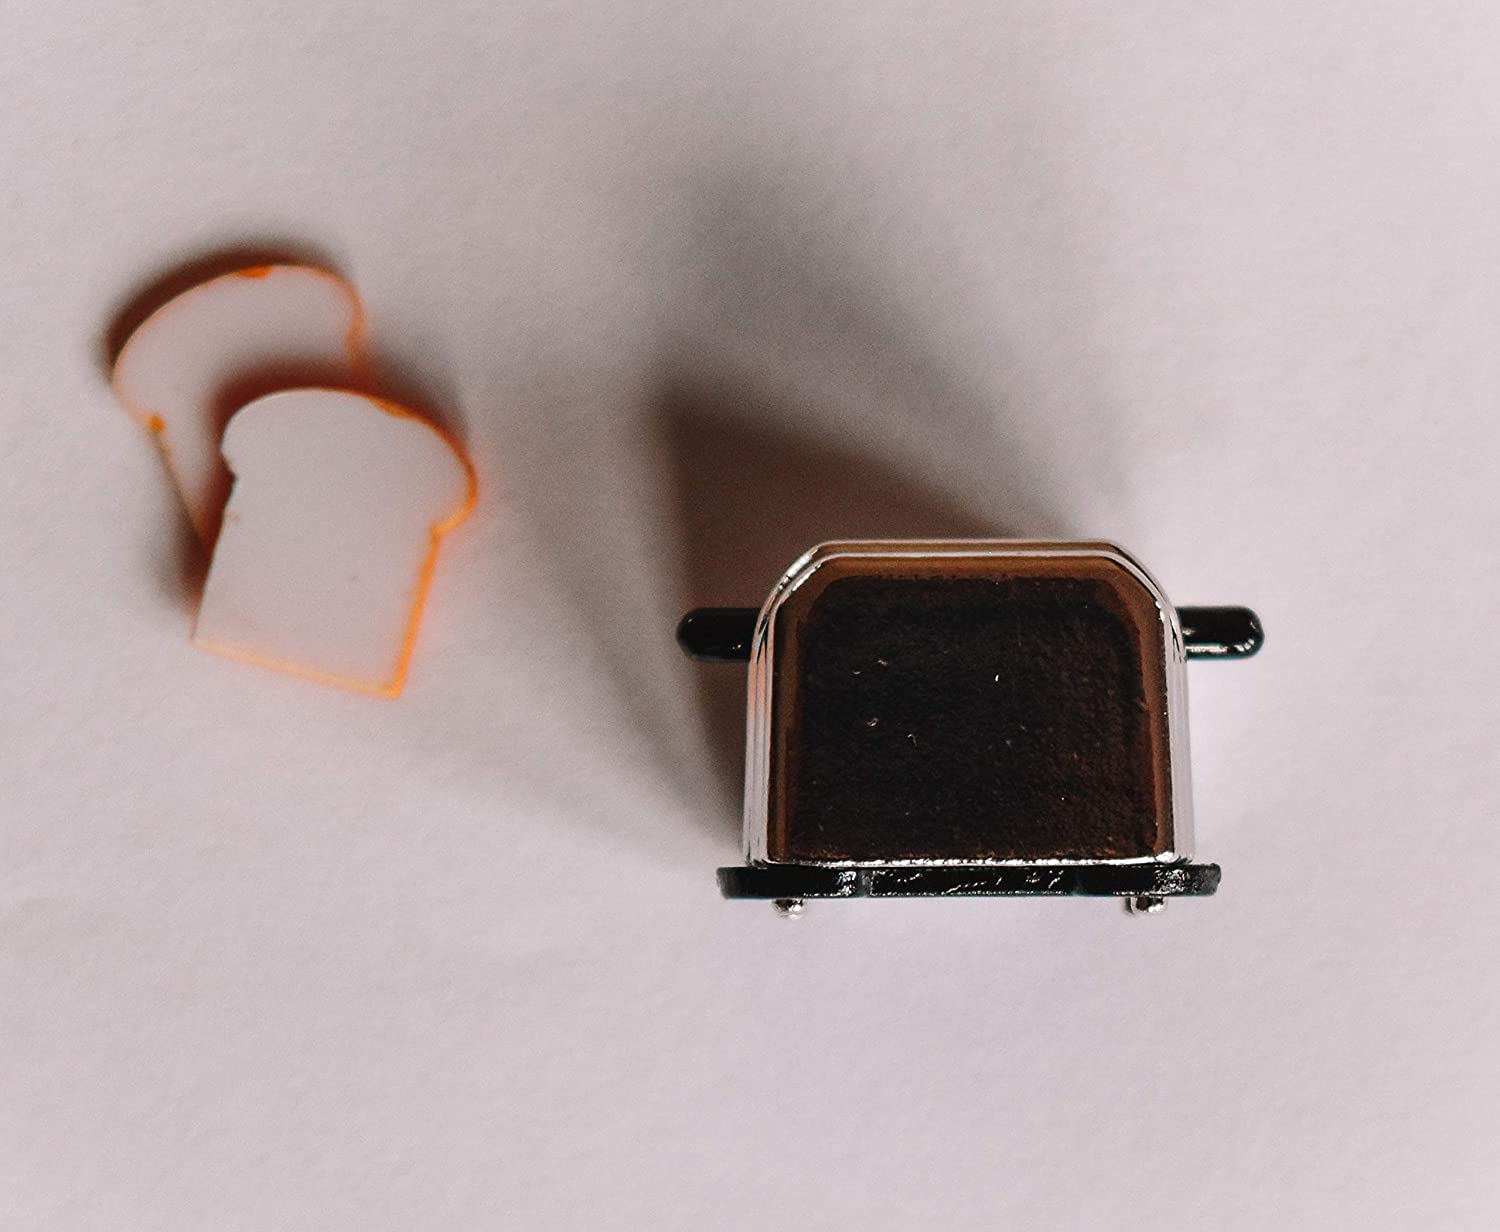 Macy Mae 1:12 Scale Dollhouse Metal Toaster. Picture Perfect Miniature Doll House Kitchen Accessory.